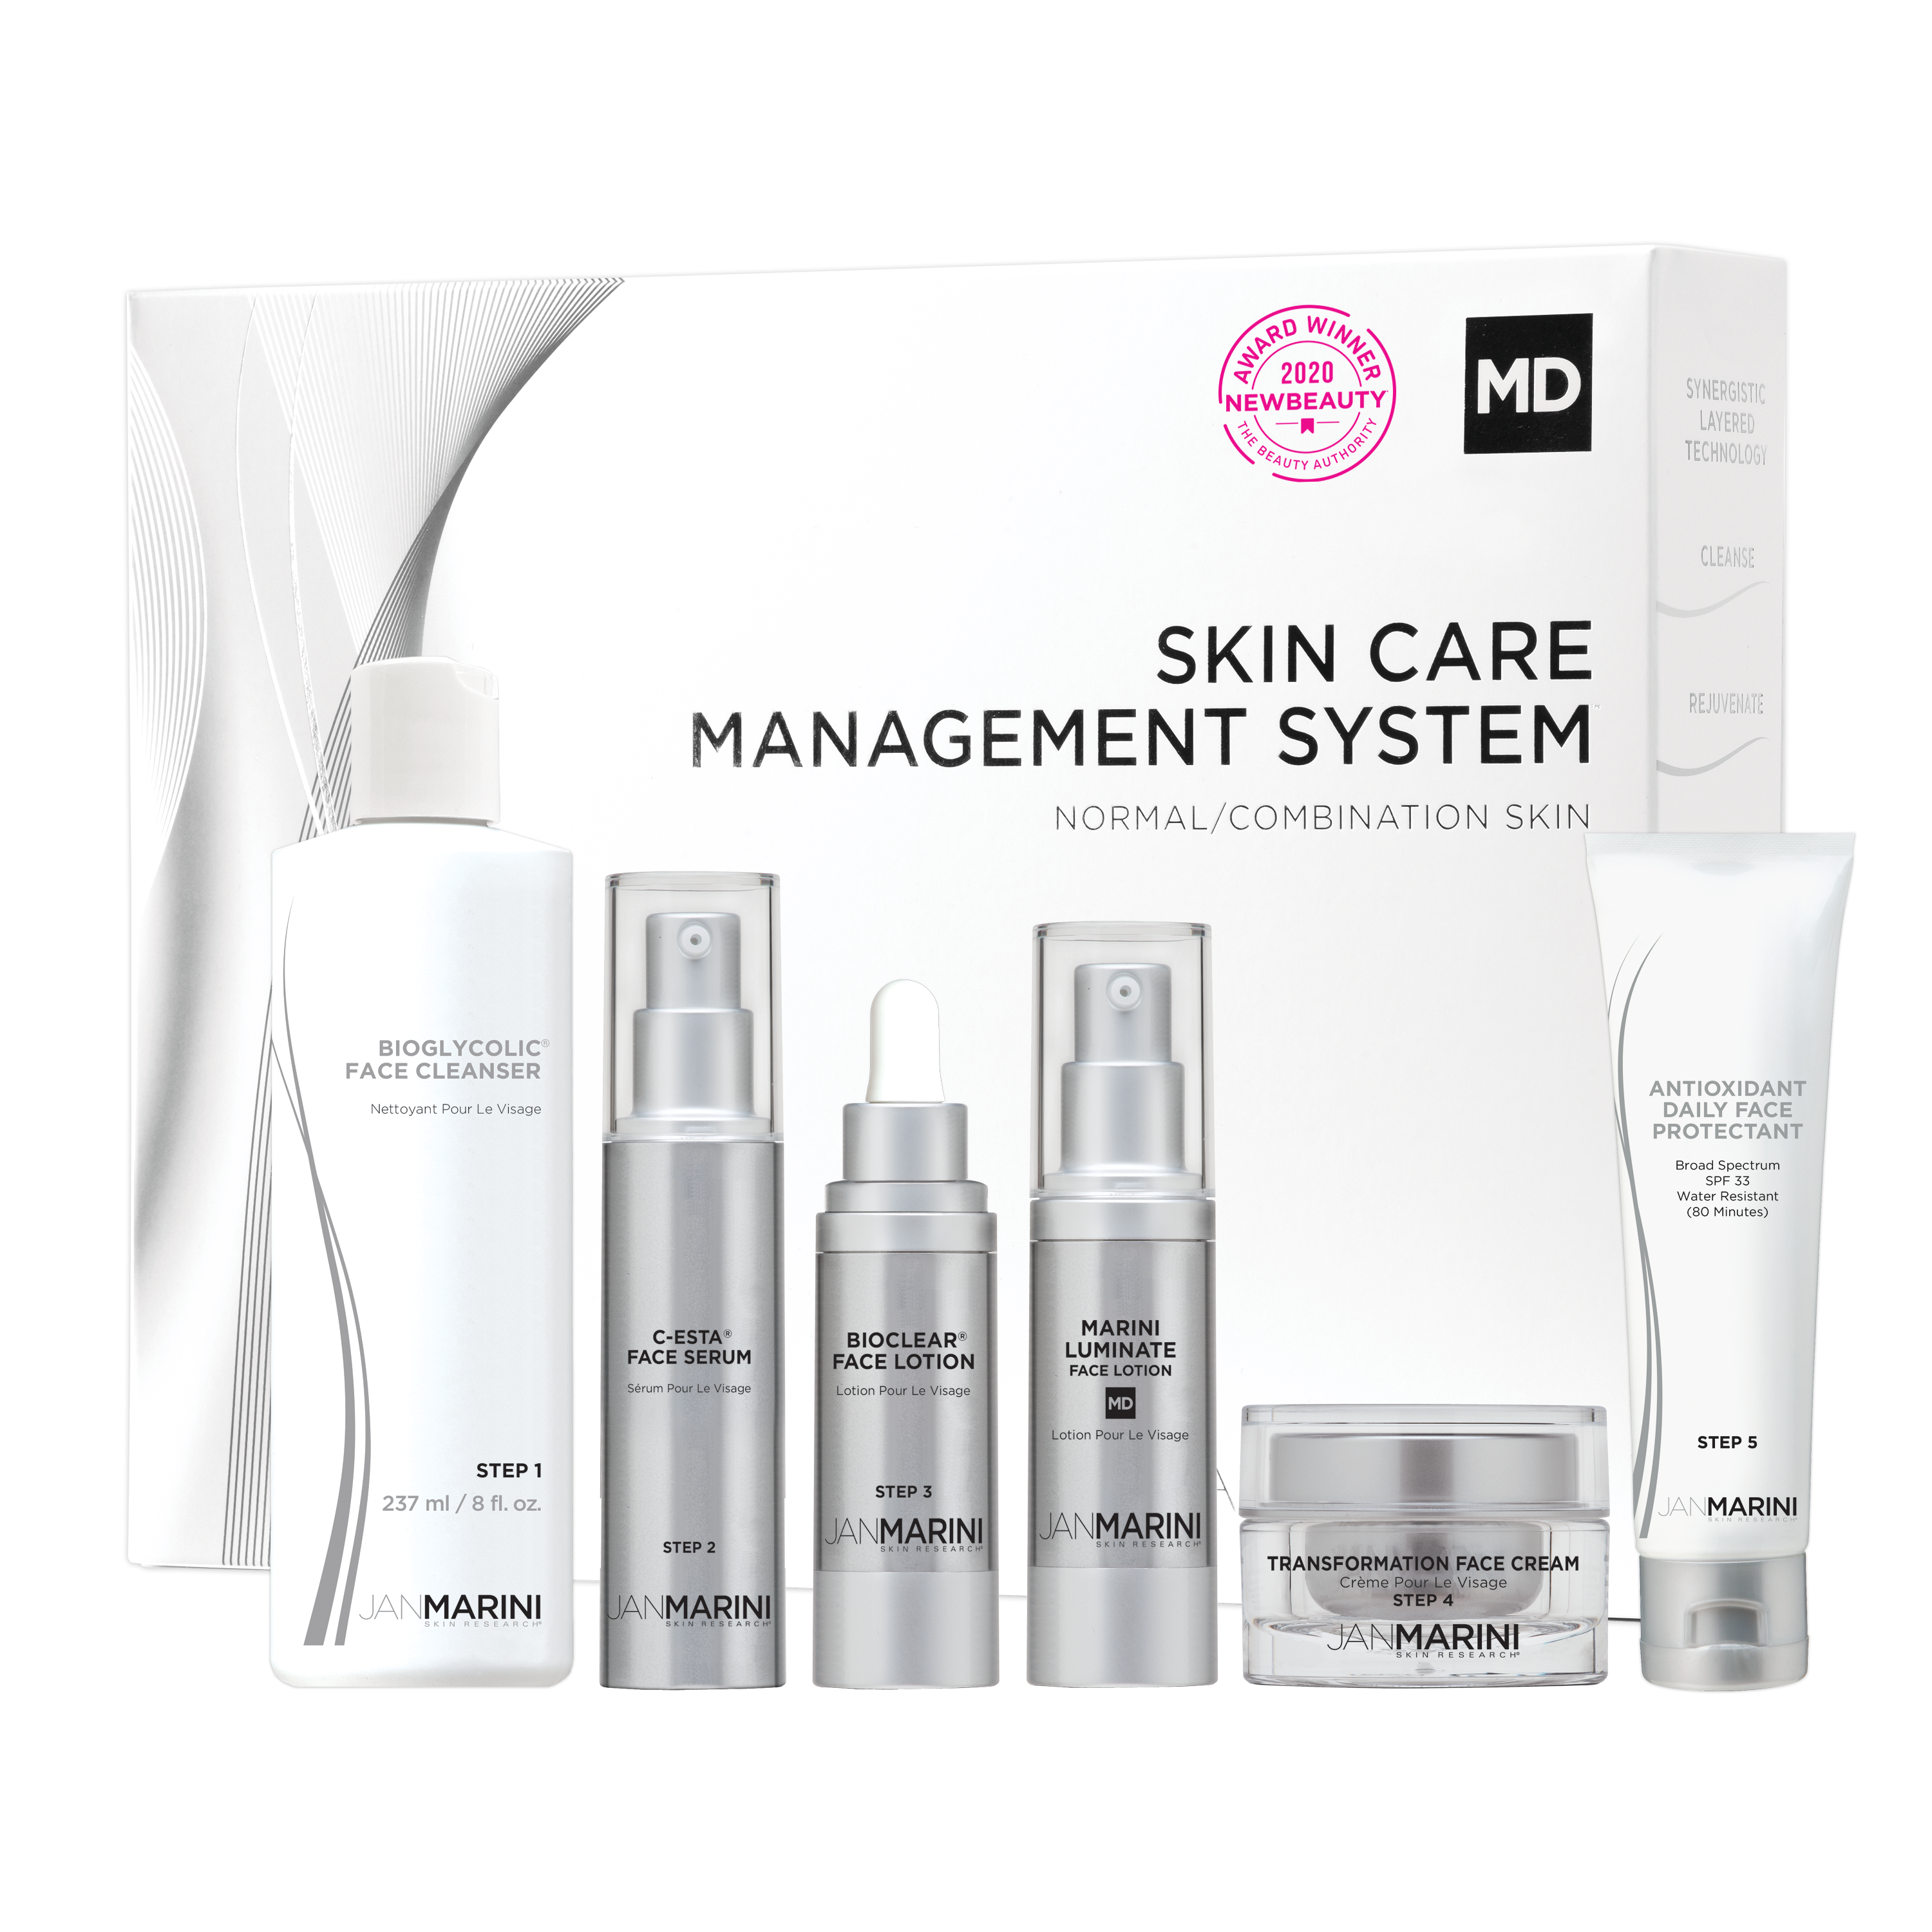 Skin Care Consultations and Services